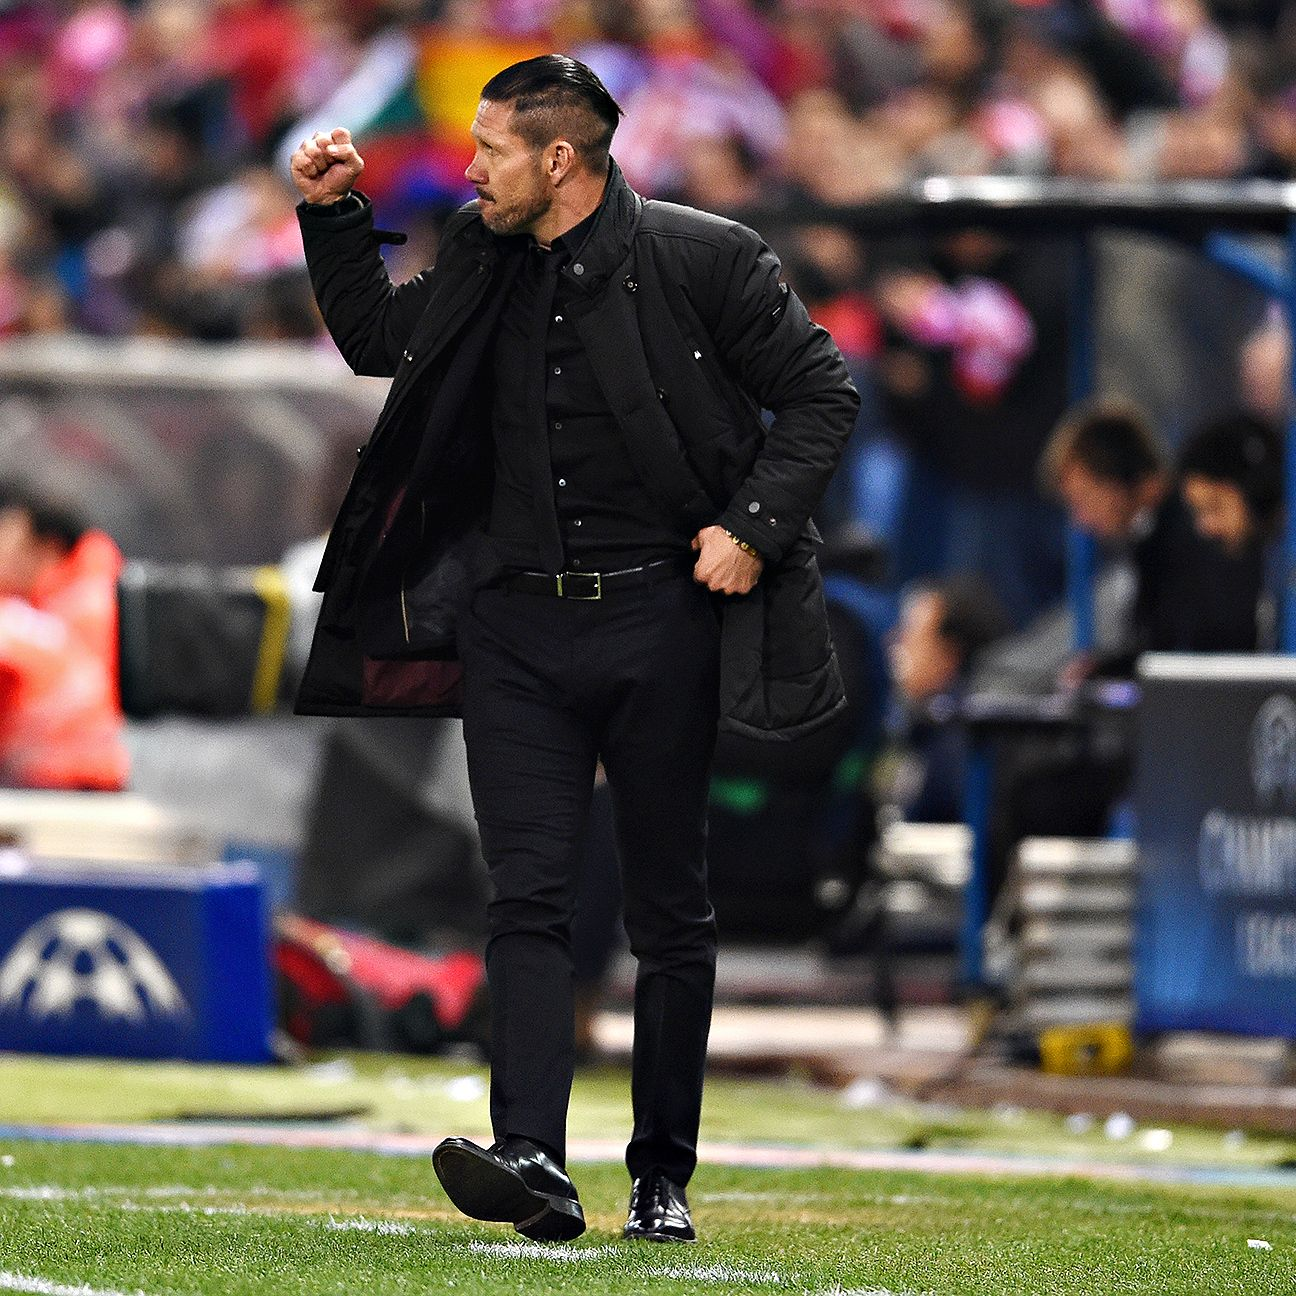 Some long-distance travel should not deter Diego Simeone's Atletico Madrid from reaching the last 16.